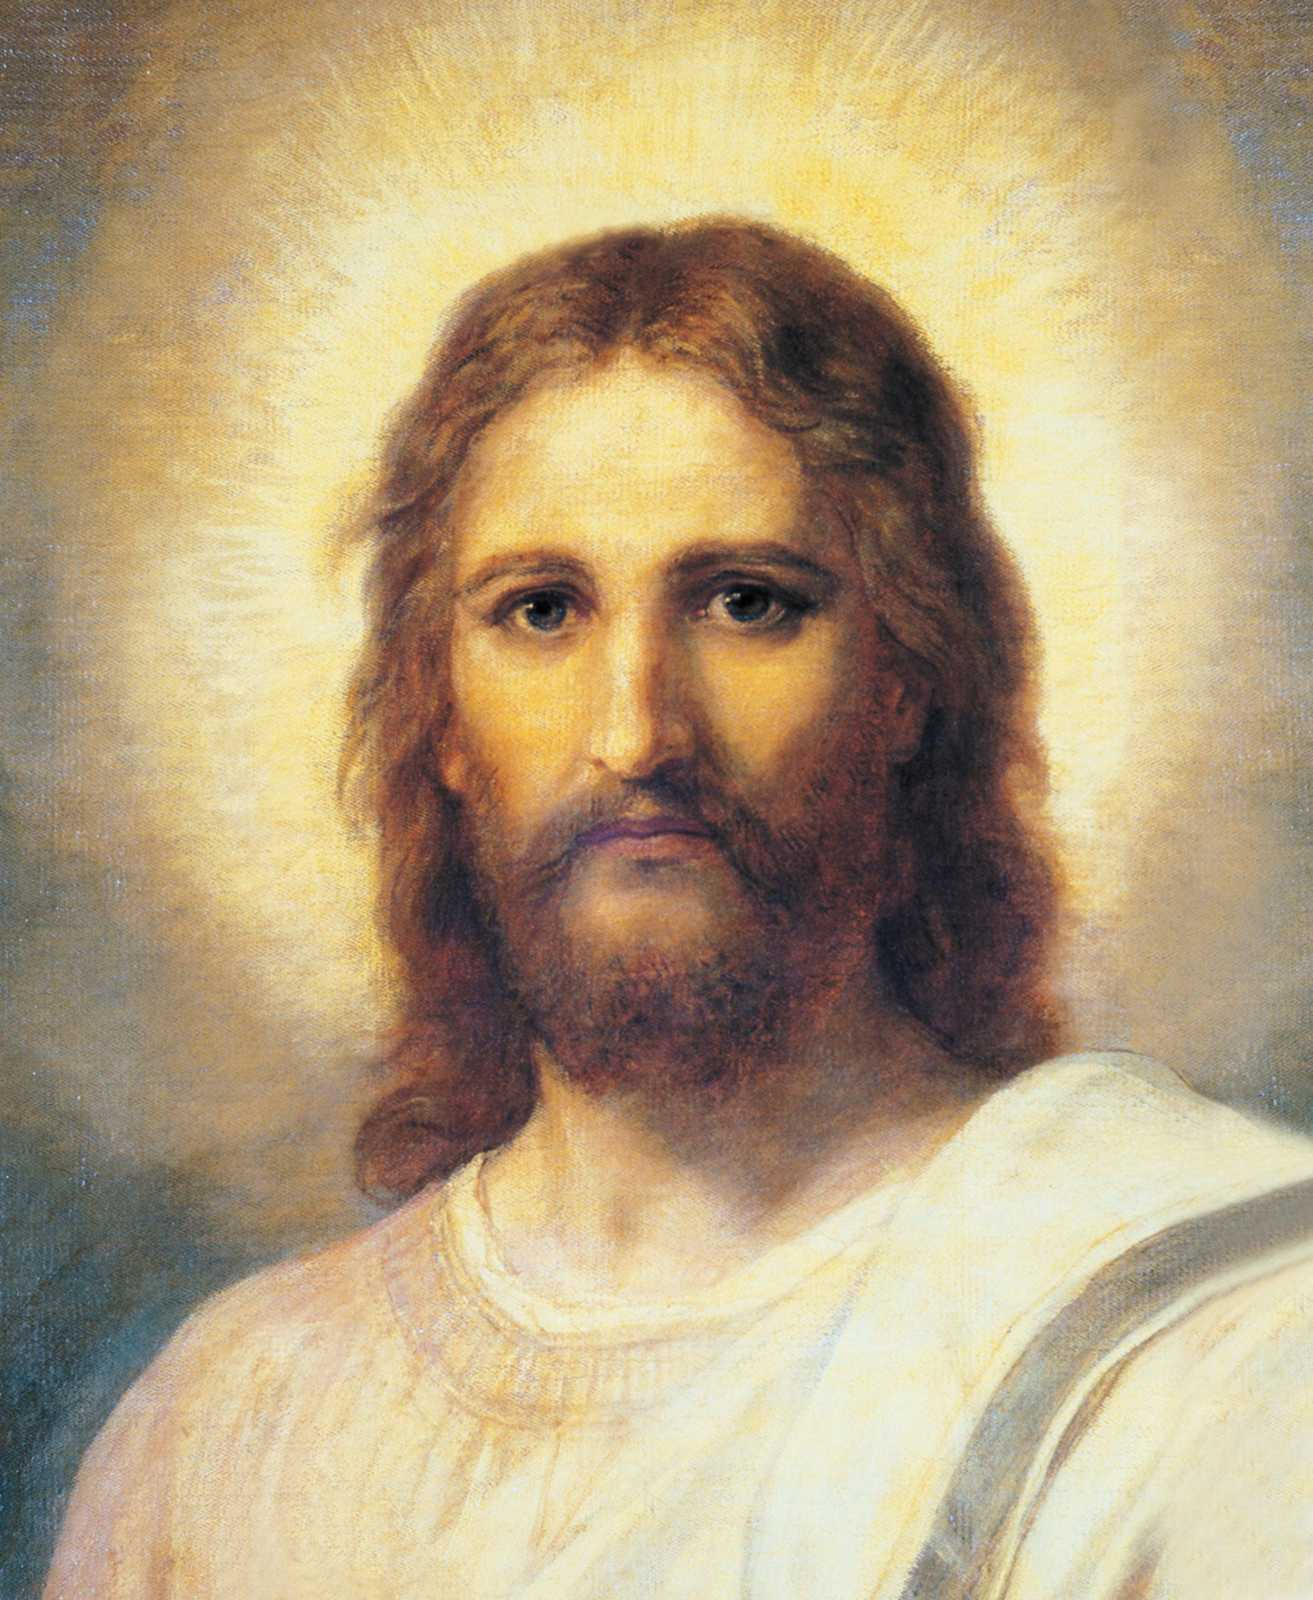 pics-of-jesus-hd-images-backgrounds-christs-mobile